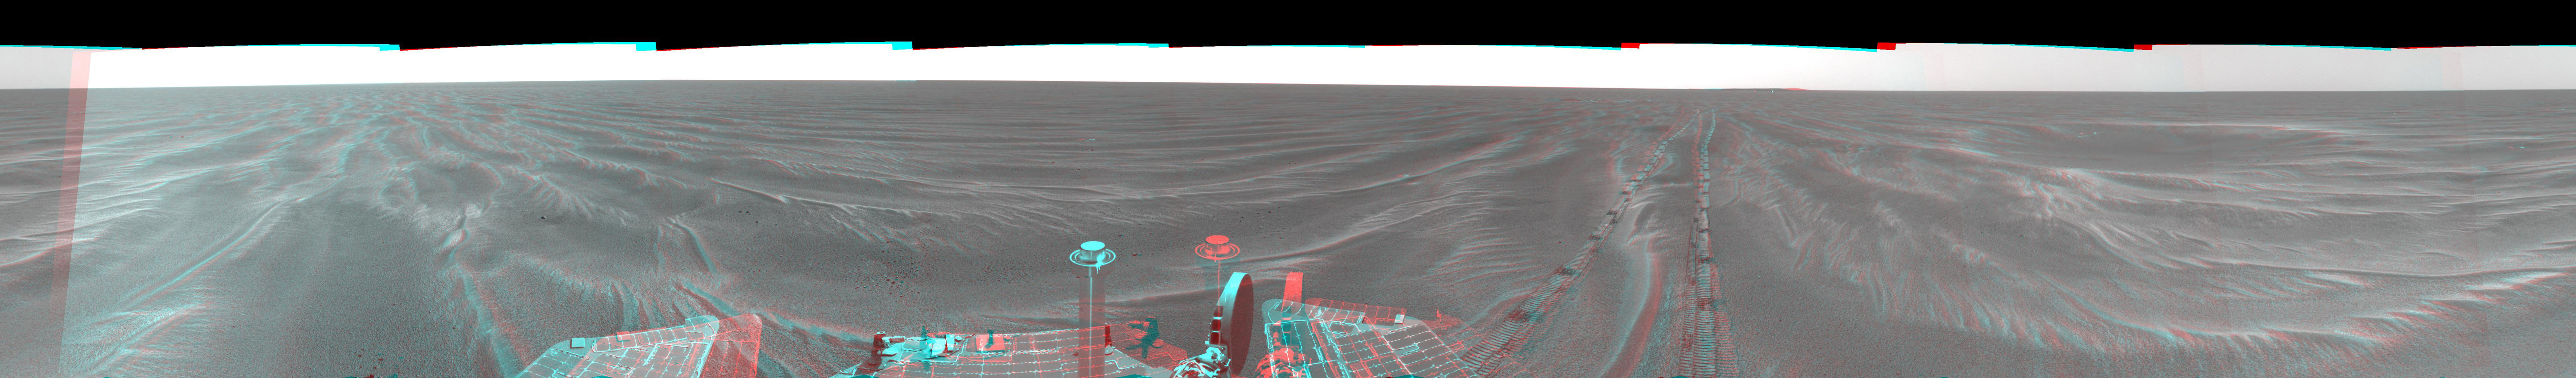 NASA's Mars Exploration Rover Opportunity arrived at this location close to a small crater dubbed 'Alvin' on Feb. 18 & 19, 2005. 3-D glasses are necessary to view this image.